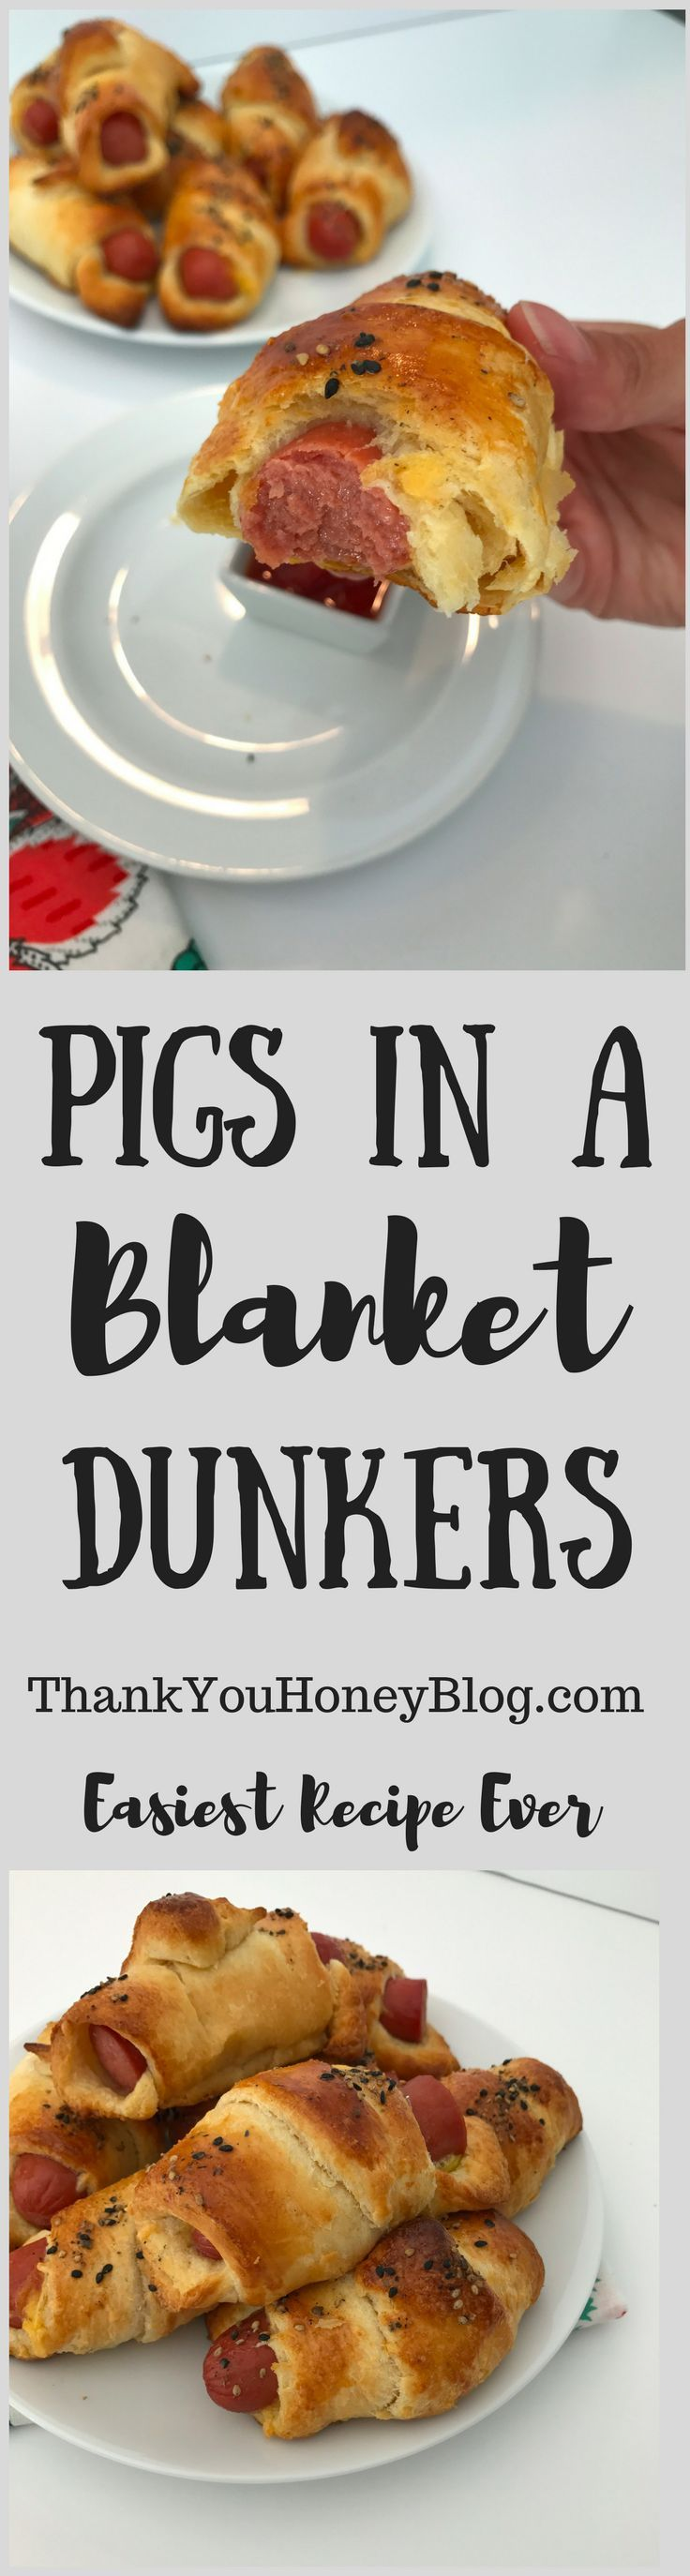 Pig in a Blanket Dunkers recipe. Perfect appetizer or quick dinner! Click through & PIN IT! Follow Us on Pinterest + Subscribe to ThankYouHoneyBlog{dot}com, Recipe, Dinner, Appetizer, Spring, Tutorial, #EasterwithPillsbury {ad} @walmart